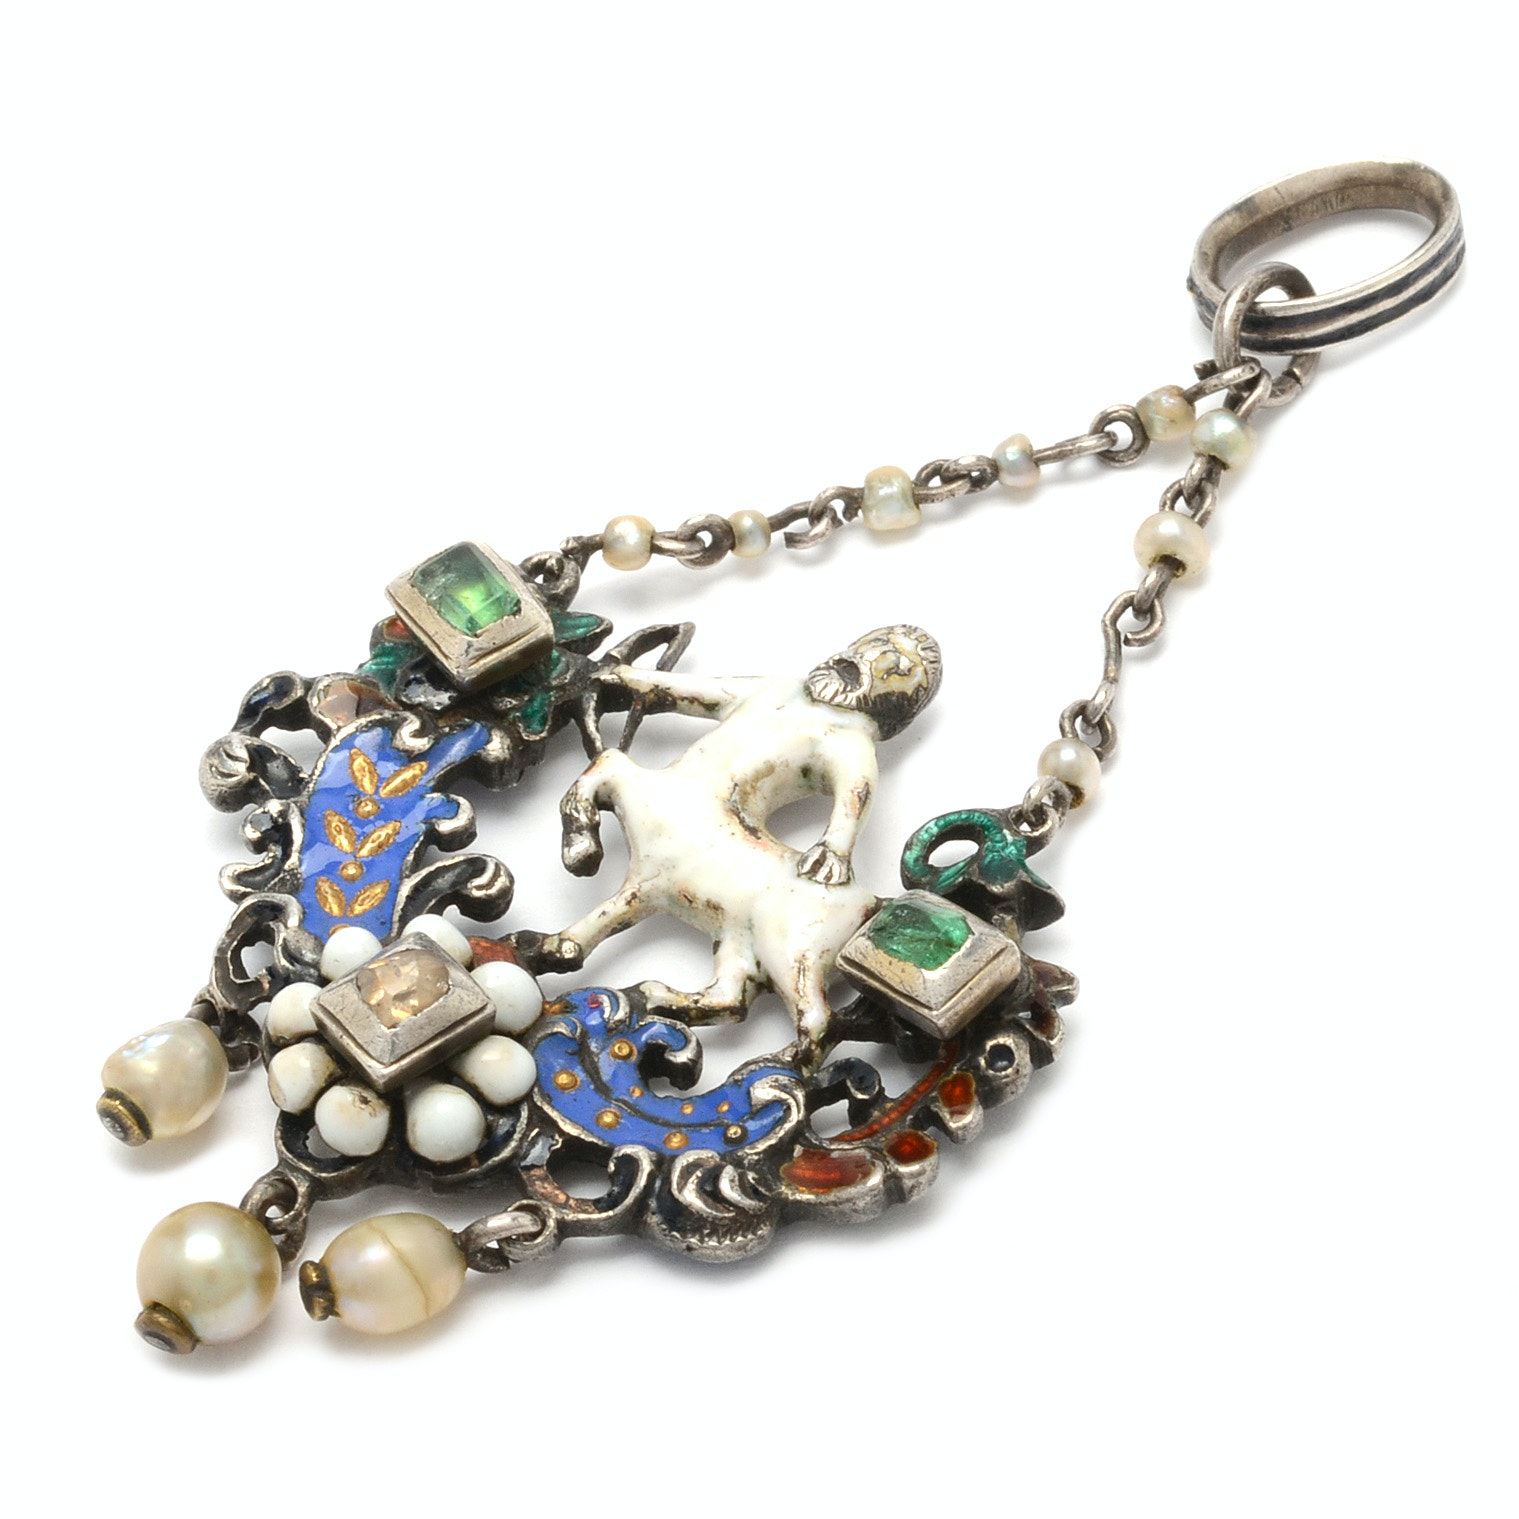 Antique Sterling Silver Enamel Centaur Pendant with Diamond and Emeralds